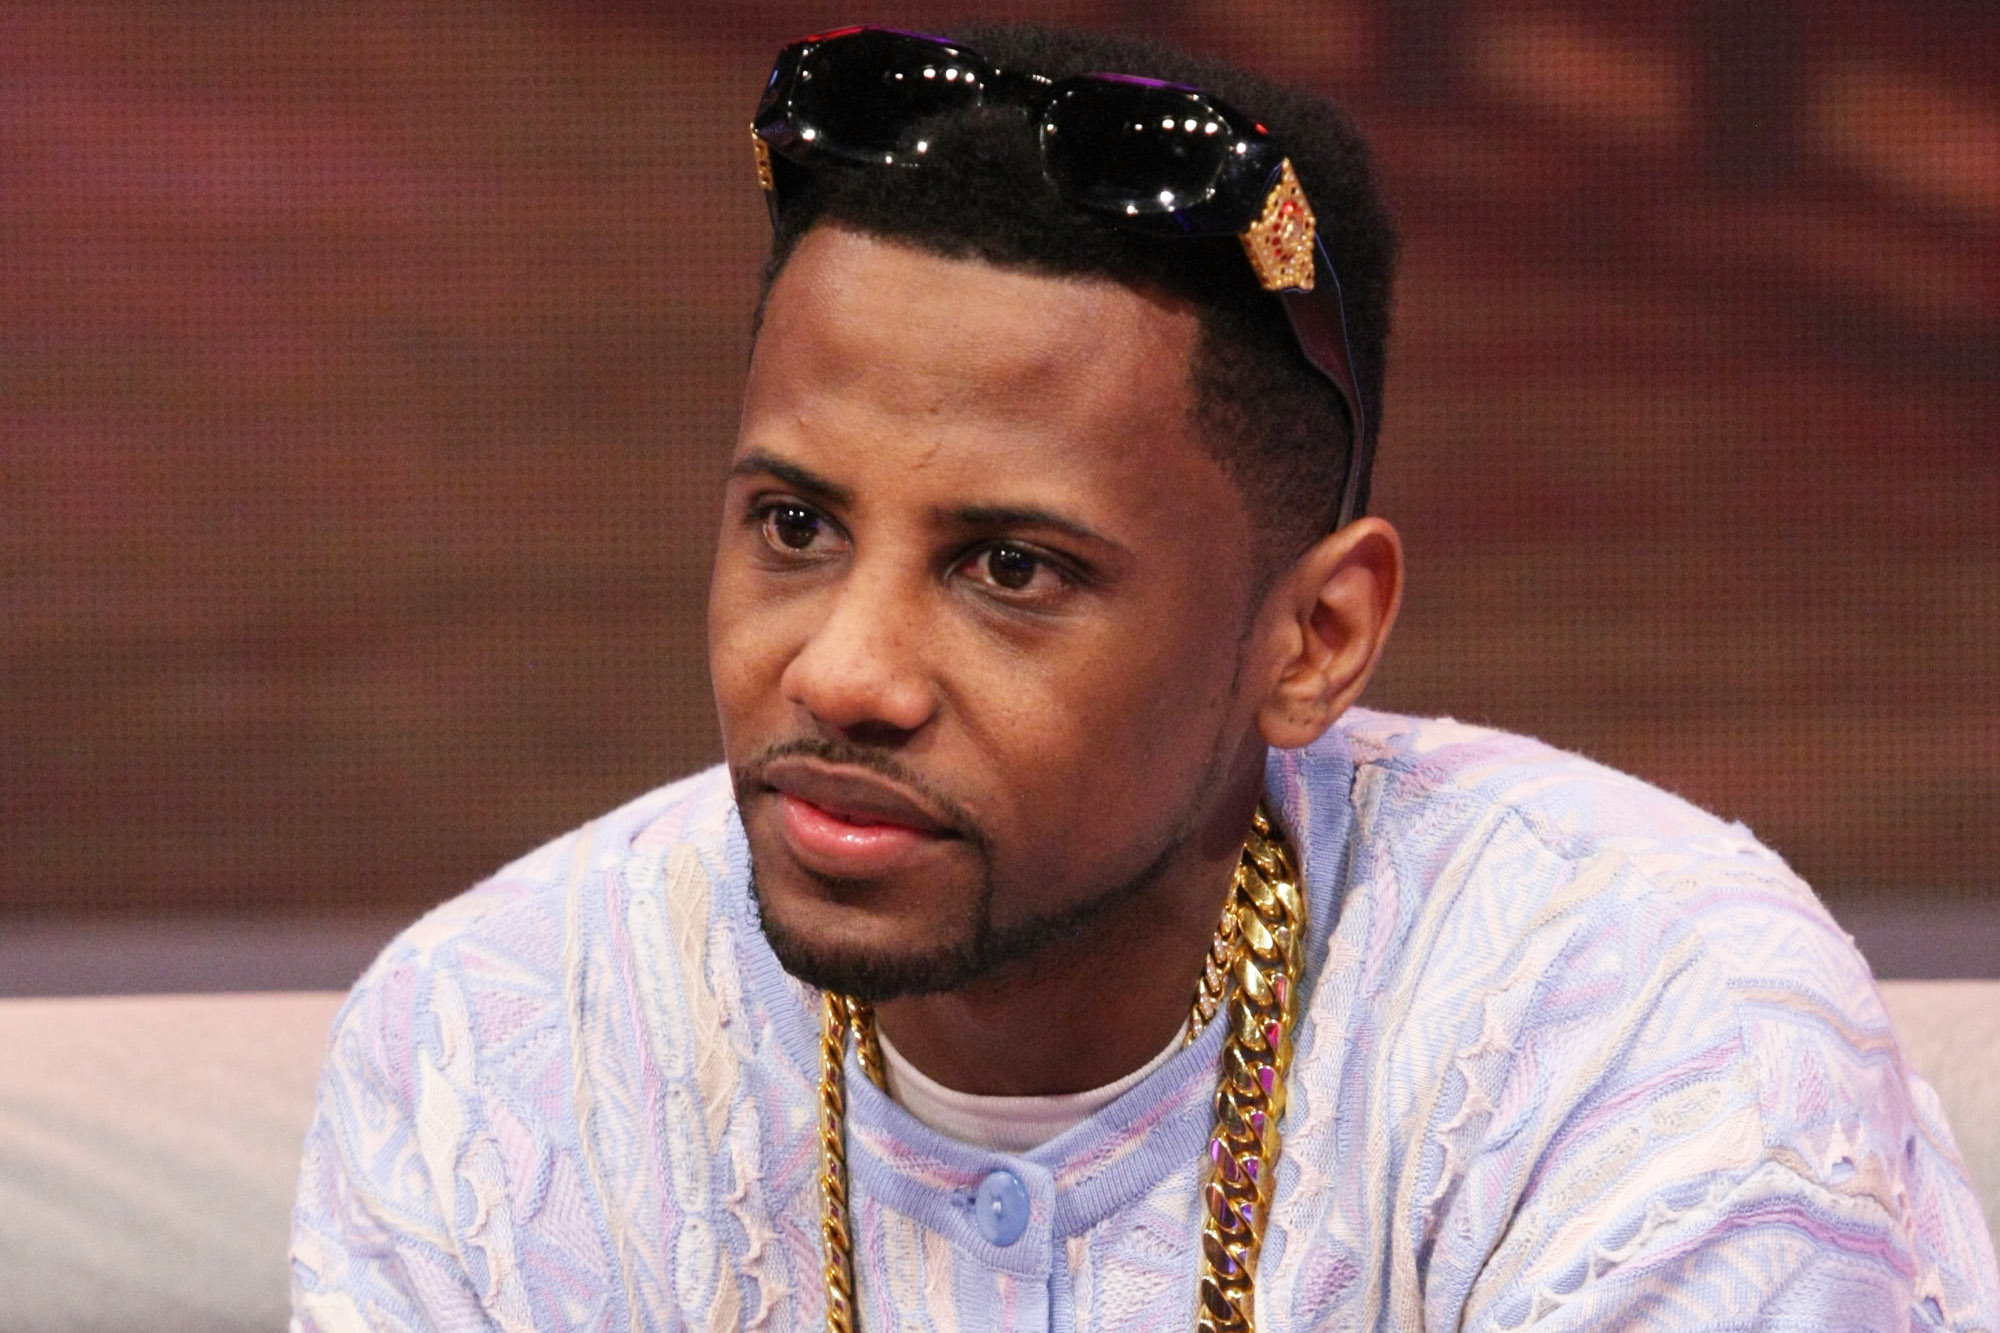 Fabolous looking gorgeous in a pastel shirt with his sunglasses on top of his head.jpg